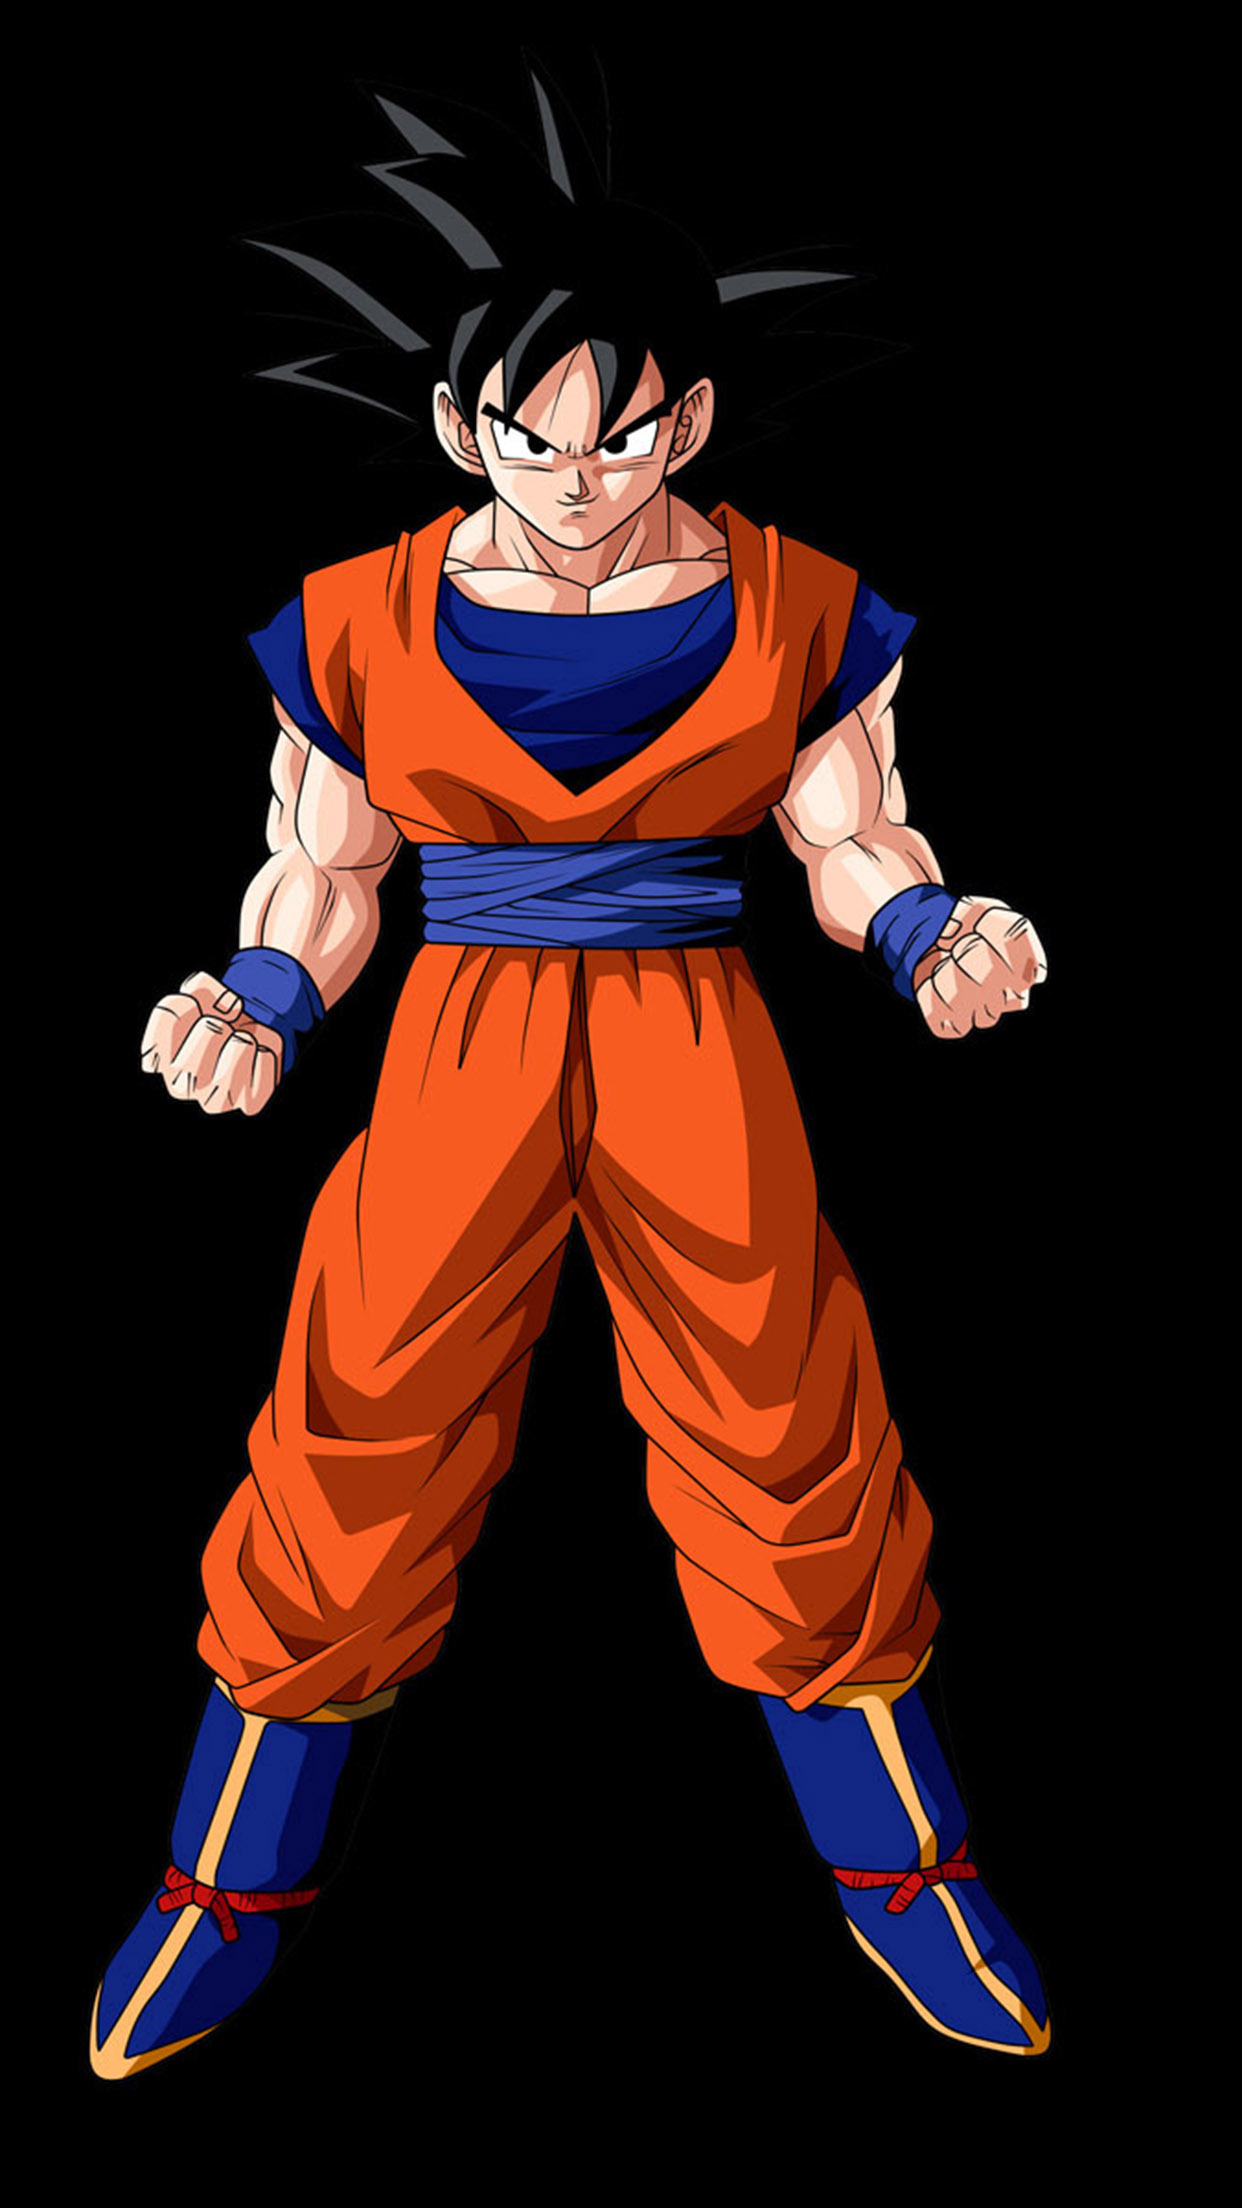 Dragon Ball Z Sangoku Wallpaper For Iphone 11 Pro Max X 8 7 6 Free Download On 3wallpapers